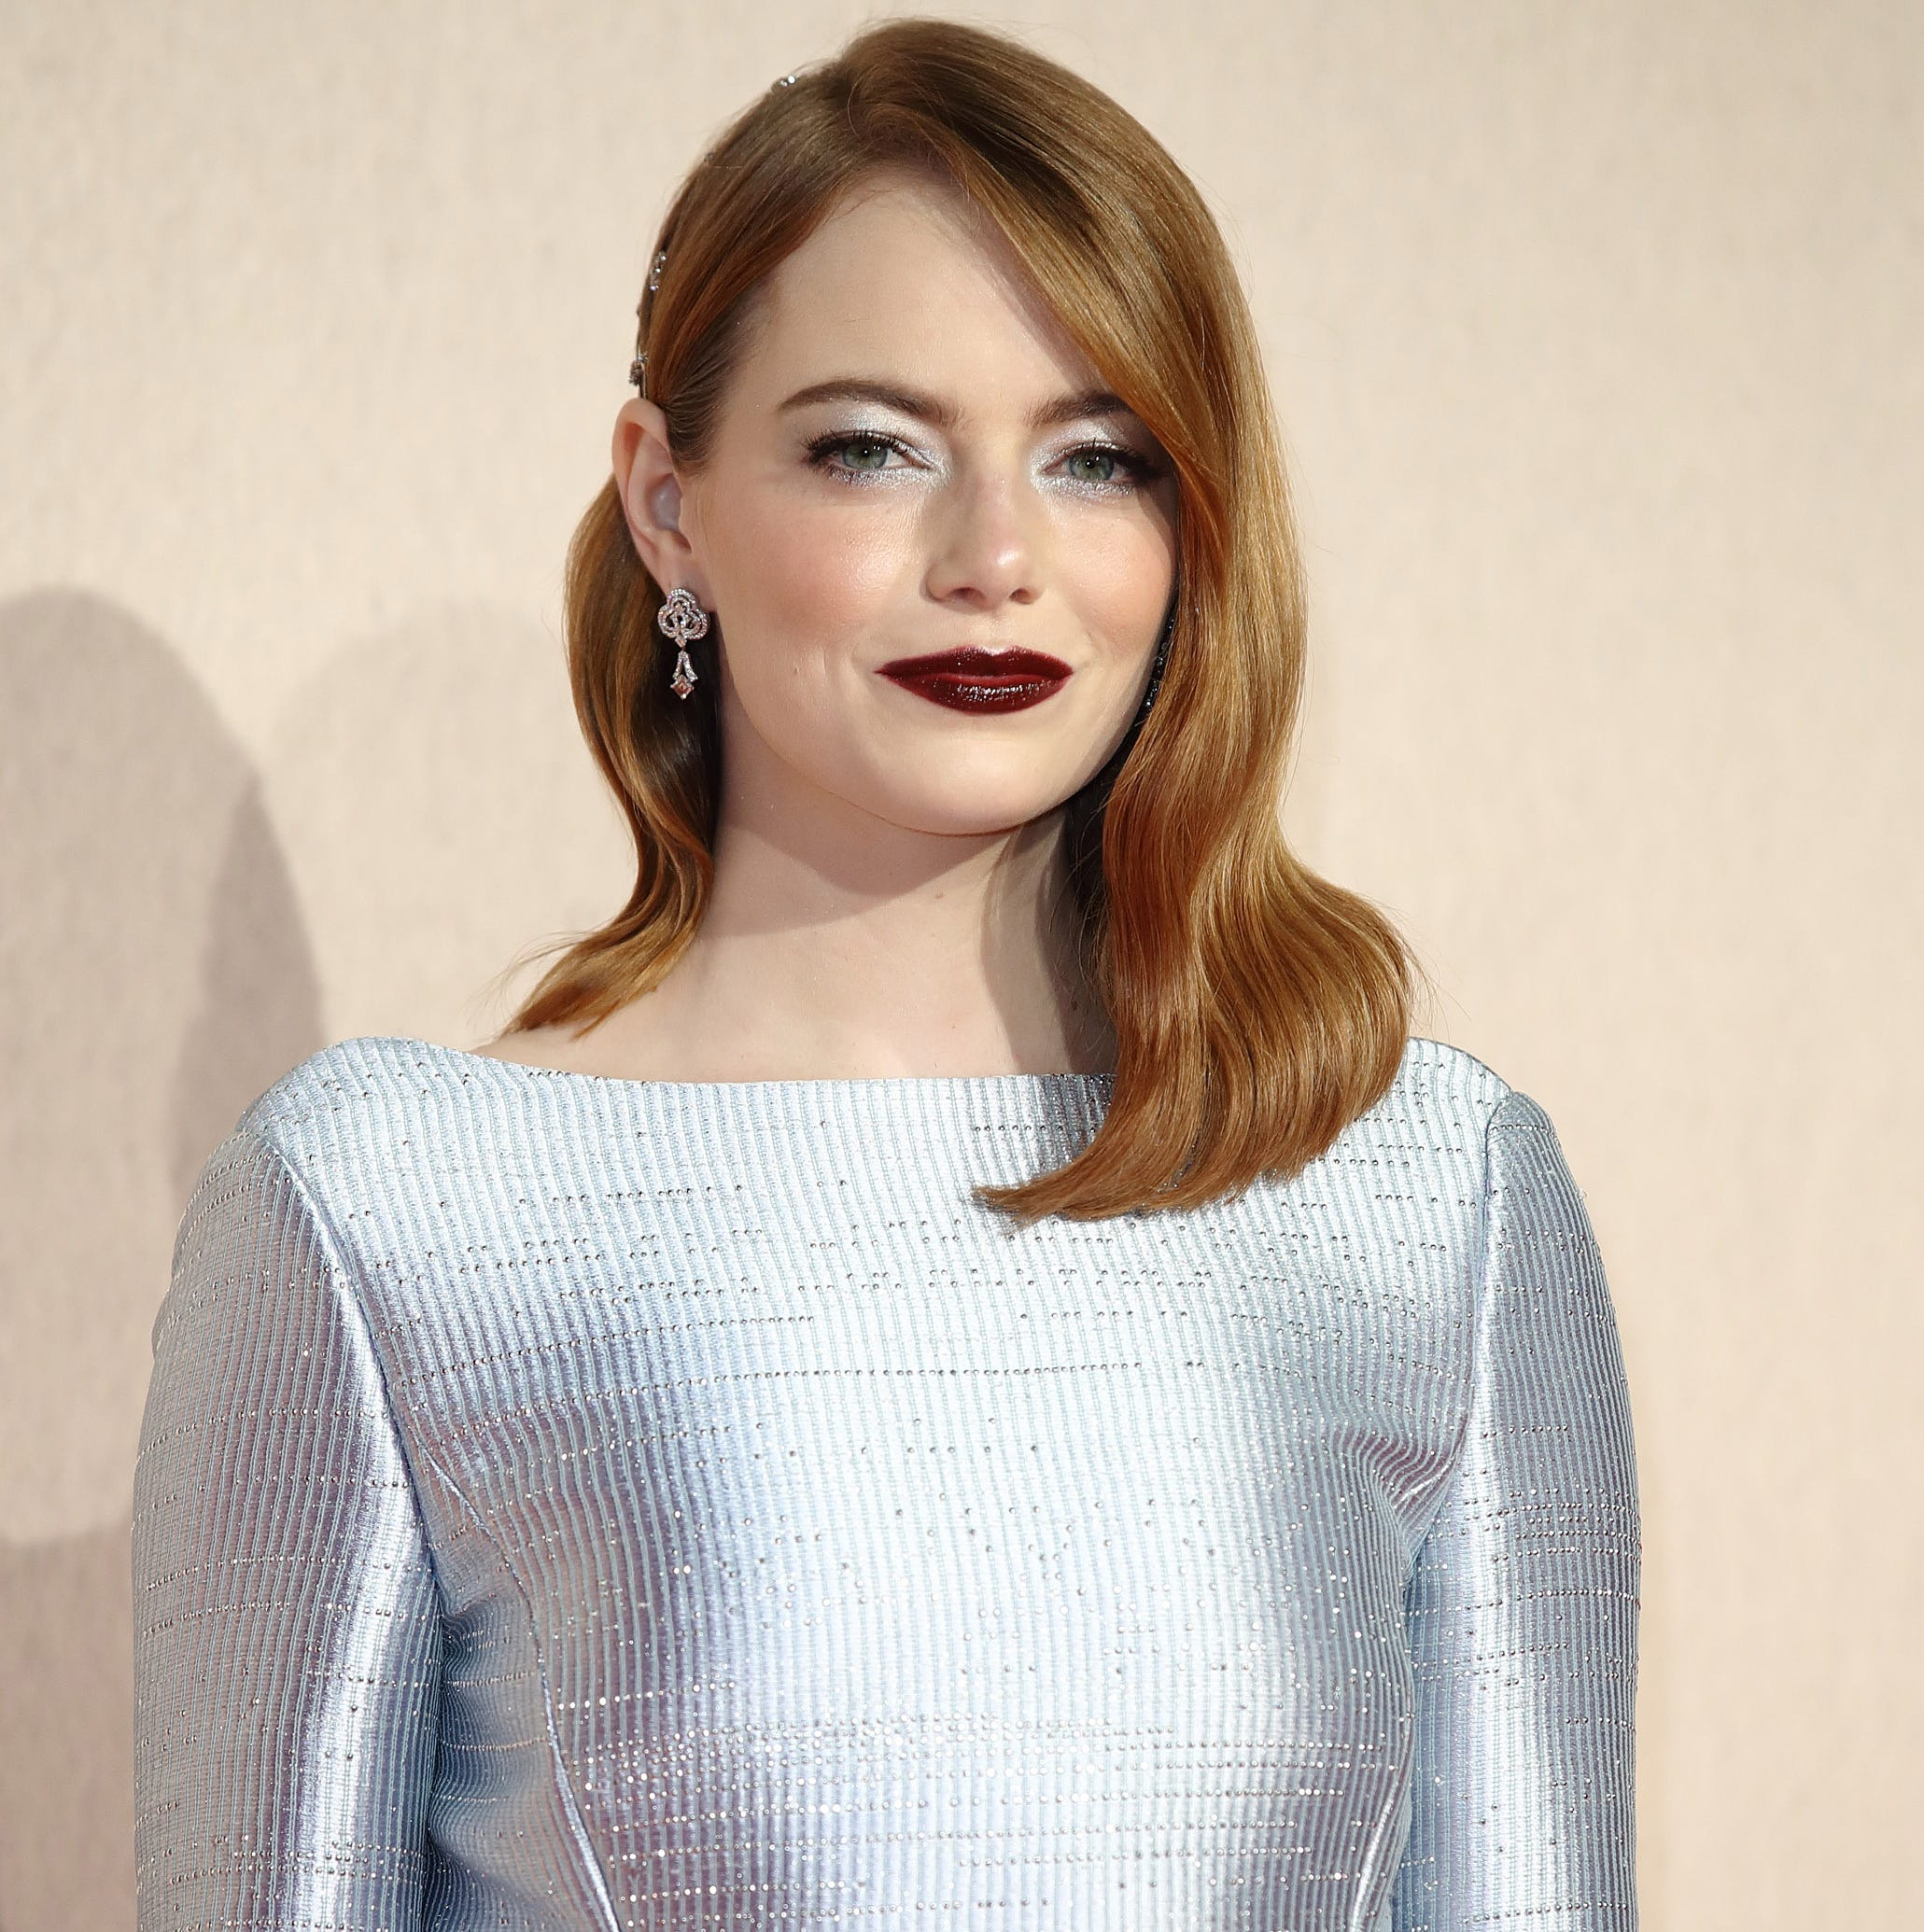 "LONDON, ENGLAND - OCTOBER 18:  Emma Stone attends the UK Premiere of ""The Favourite"" & American Express Gala at the 62nd BFI London Film Festival on October 18, 2018 in London, England.  (Photo by Mike Marsland/Mike Marsland/WireImage) ORG XMIT: 775239732 ORIG FILE ID: 1052469744"